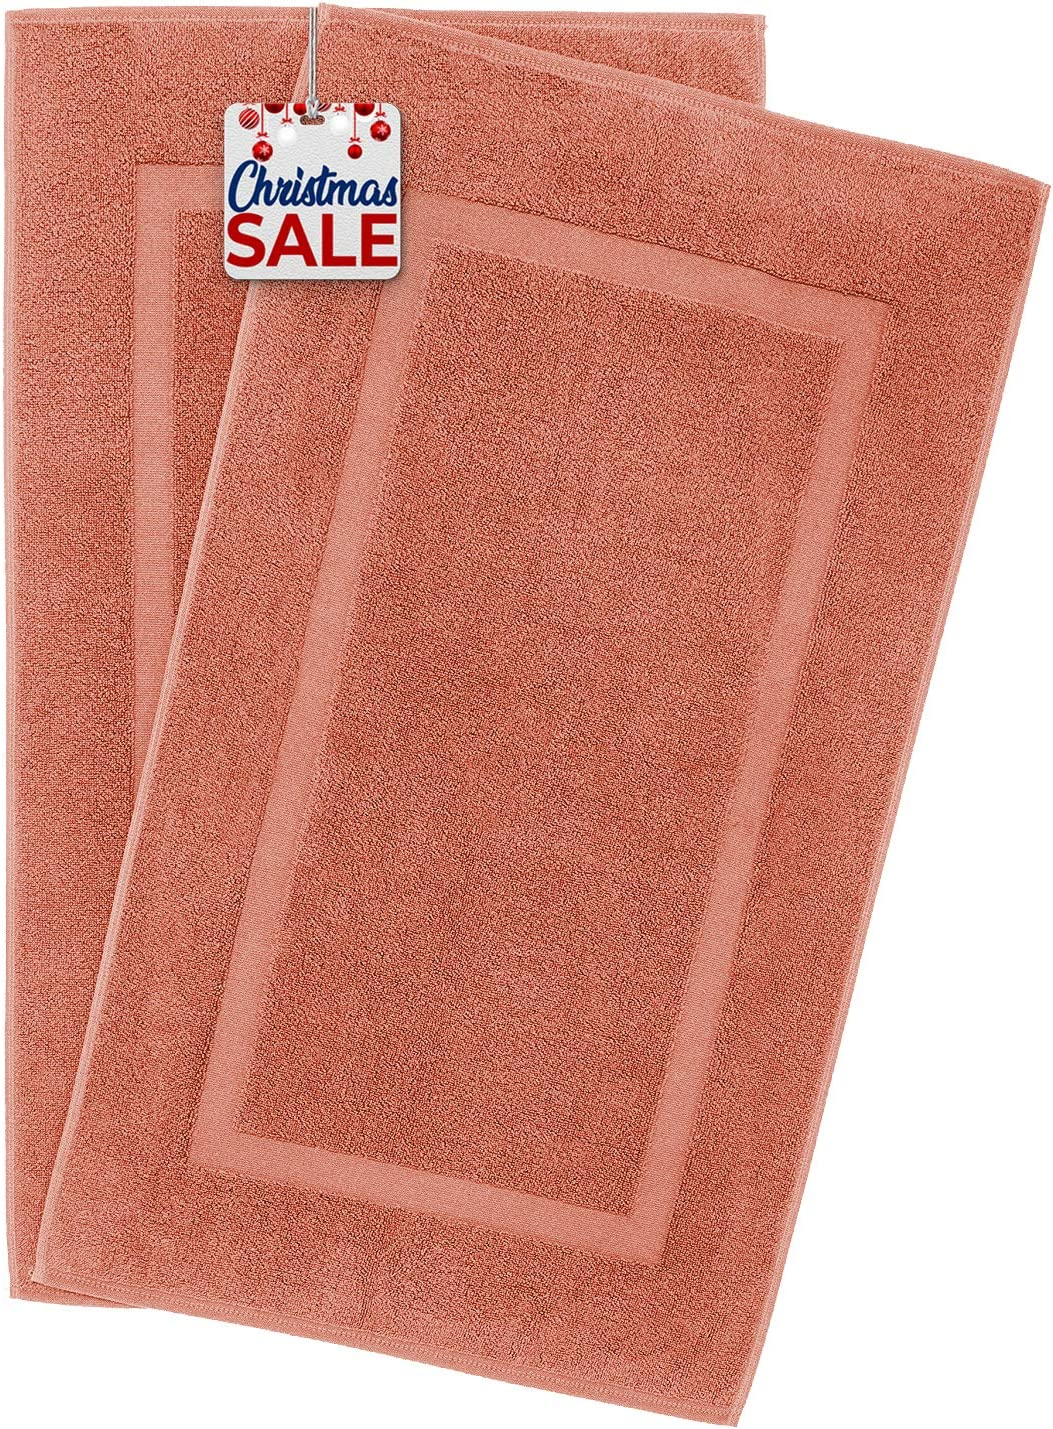 900 GSM Machine Washable 20x34 Inches 2-Pack Banded Bath Mats, Luxury Hotel & Spa Quality, 100% Ring Spun Genuine Cotton, Maximum Softness & Absorbency by United Home Textile, Coral